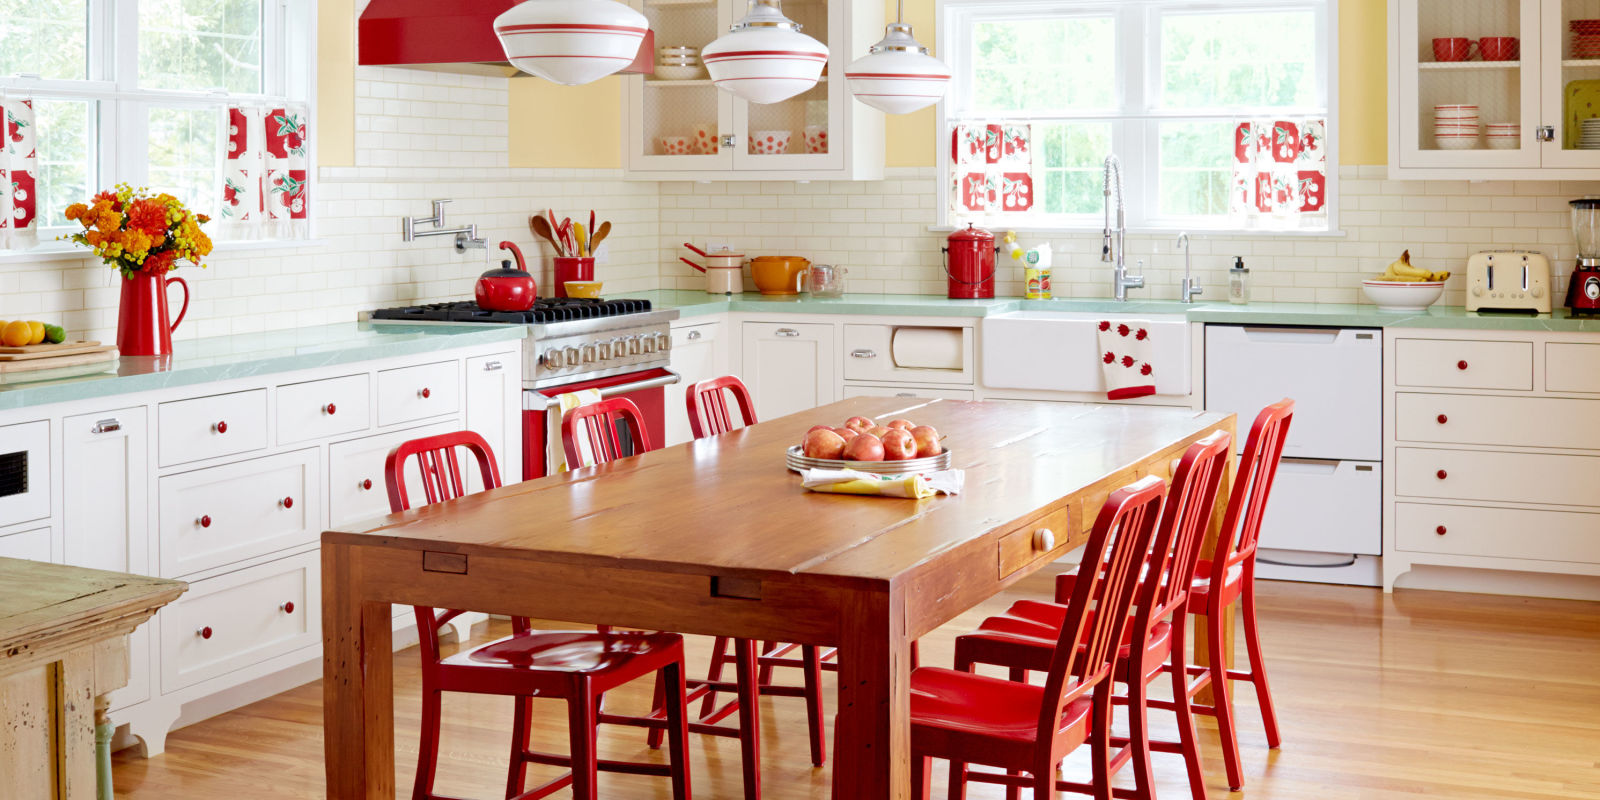 Retro kitchen kitchen decor ideas for Retro dekoration